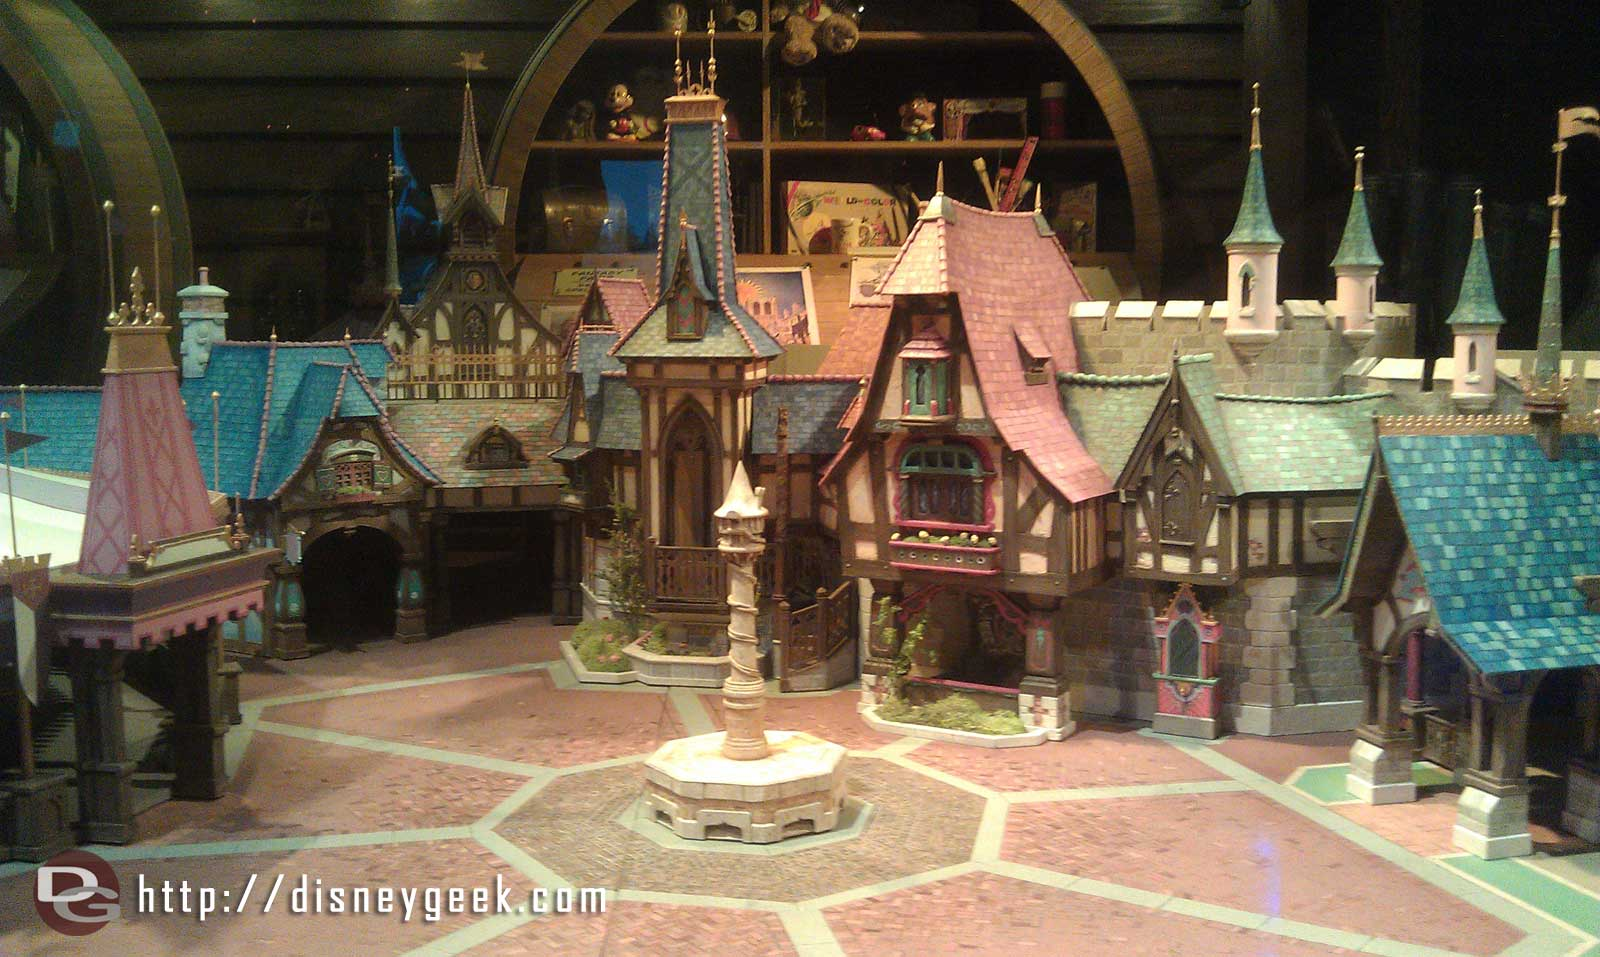 The centerpiece of the exhibit is a model of the Fantasy Faire